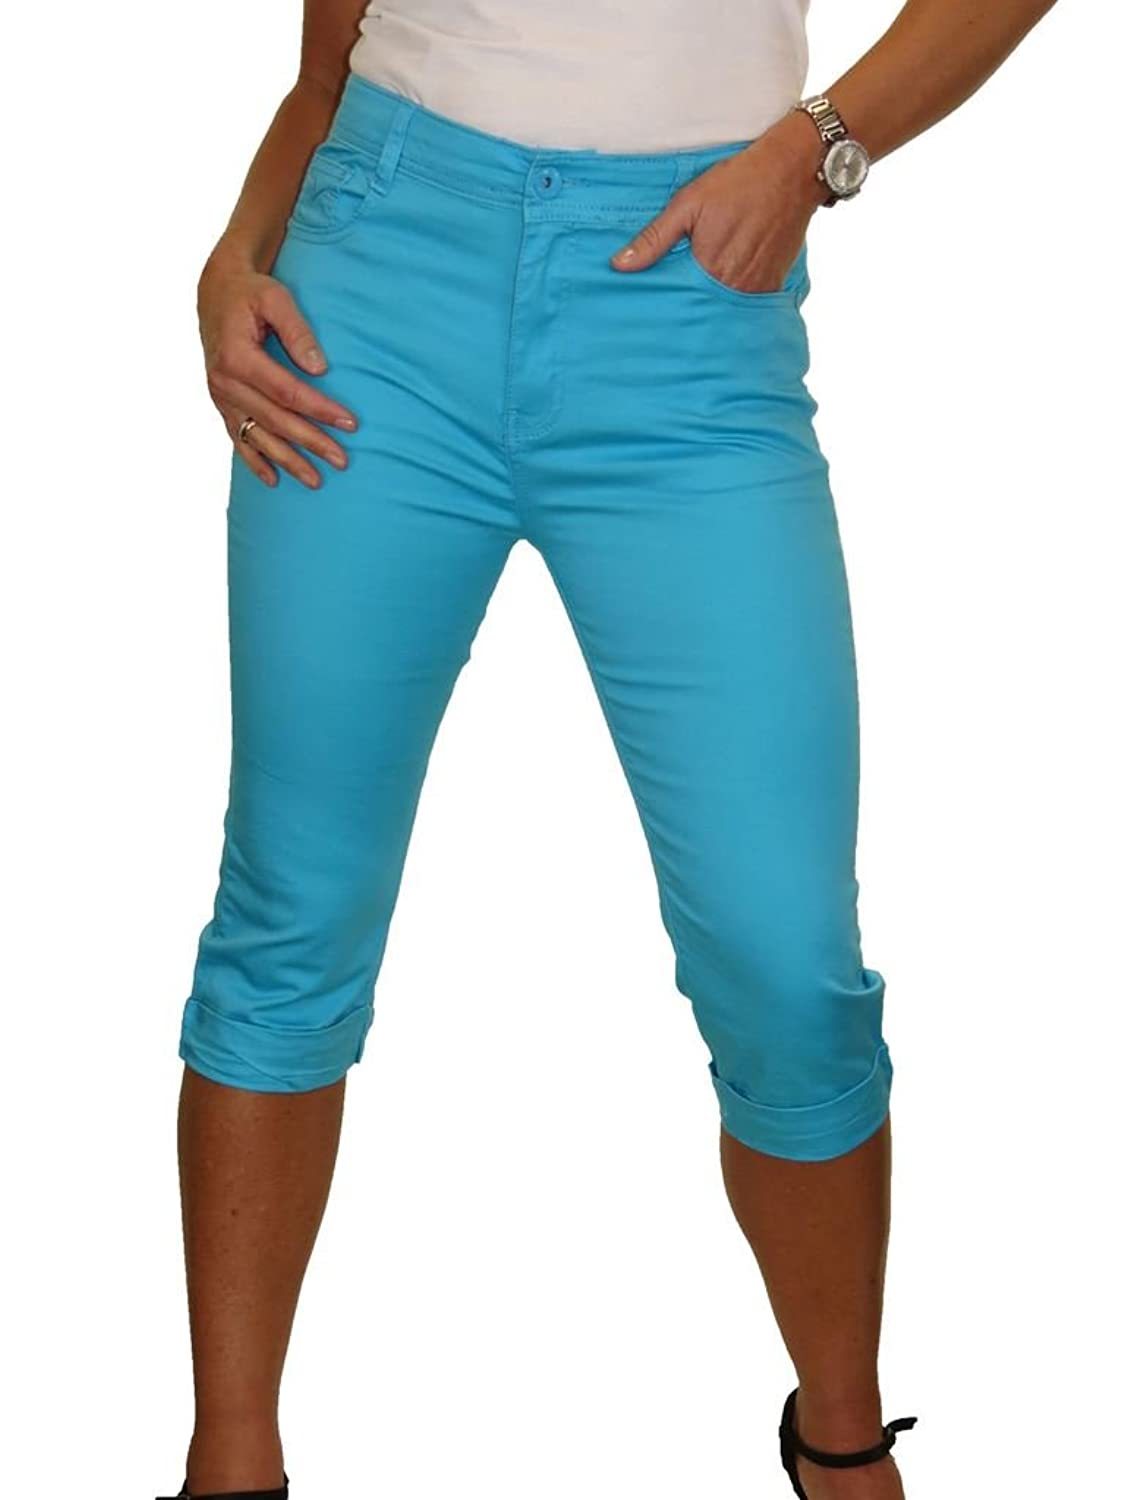 icecoolfashion High Waist Capri Cropped Stretch Jeans Chino Sheen Turn UPS 6-16